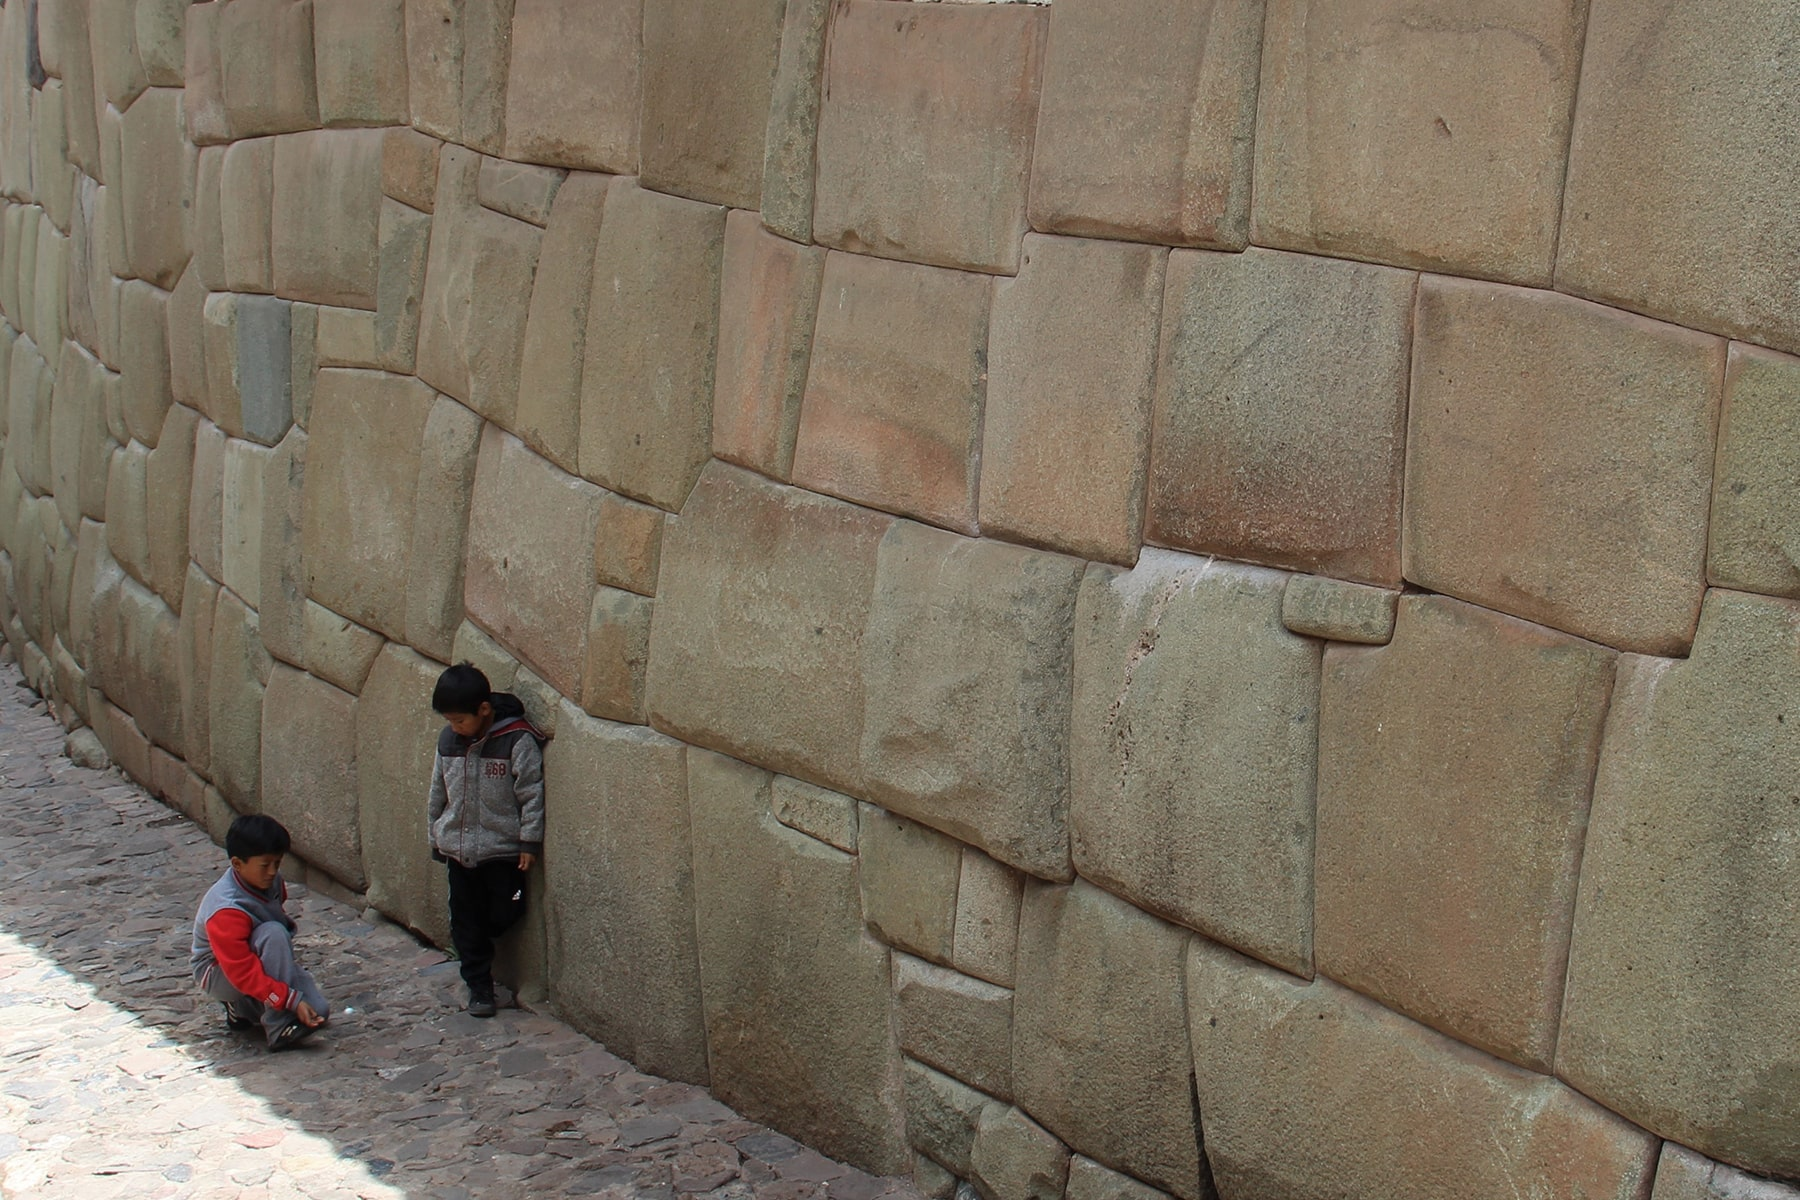 Kids in front of Inca wall